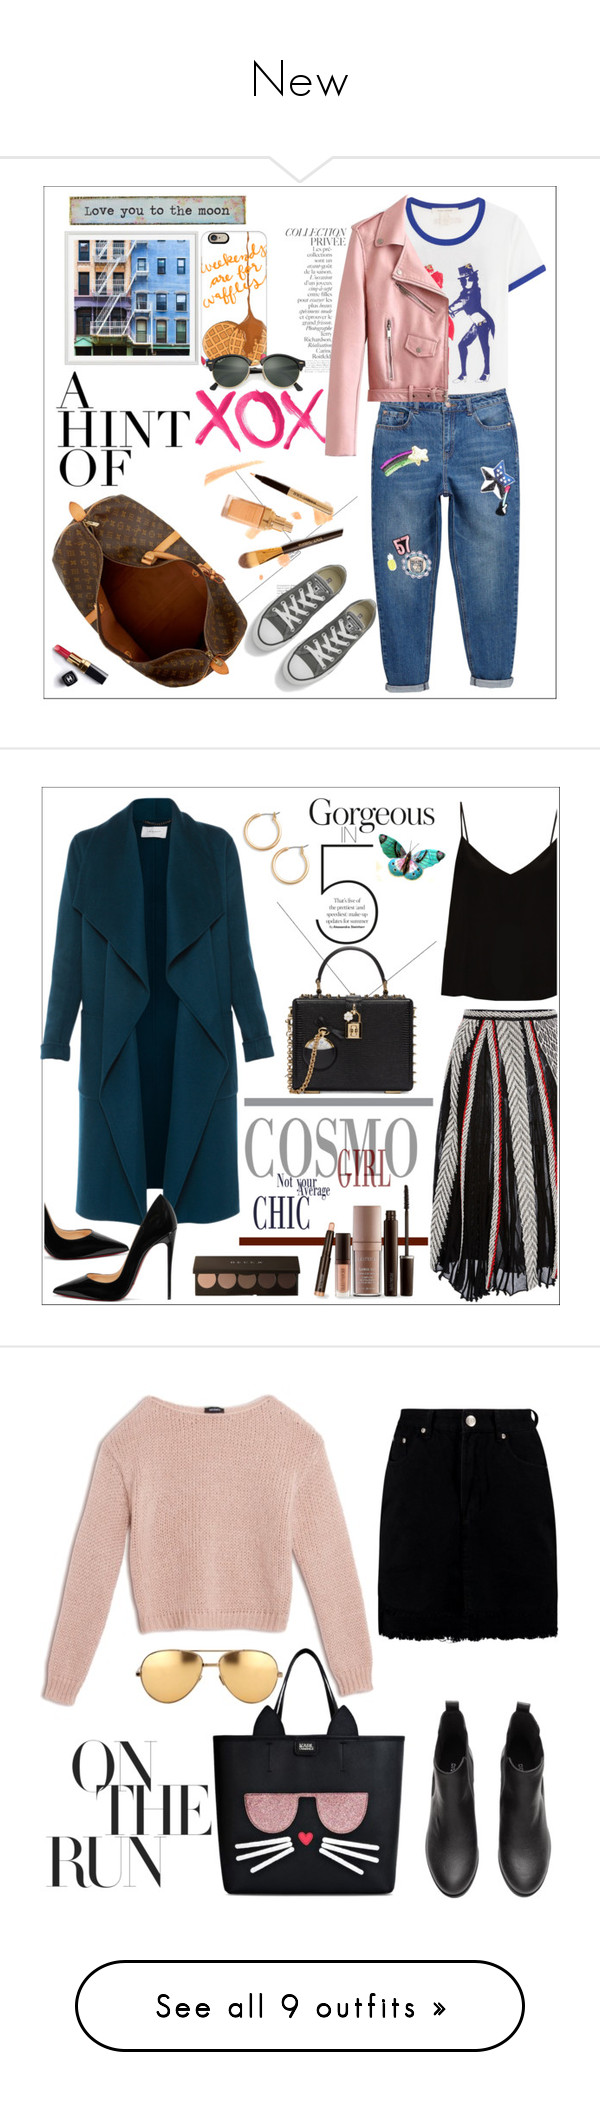 """""""New"""" by kryskristine ❤ liked on Polyvore featuring Marc Jacobs, GALA, Pottery Barn, Louis Vuitton, Casetify, Chanel, Natural Life, By Terry, Dolce&Gabbana and Converse"""